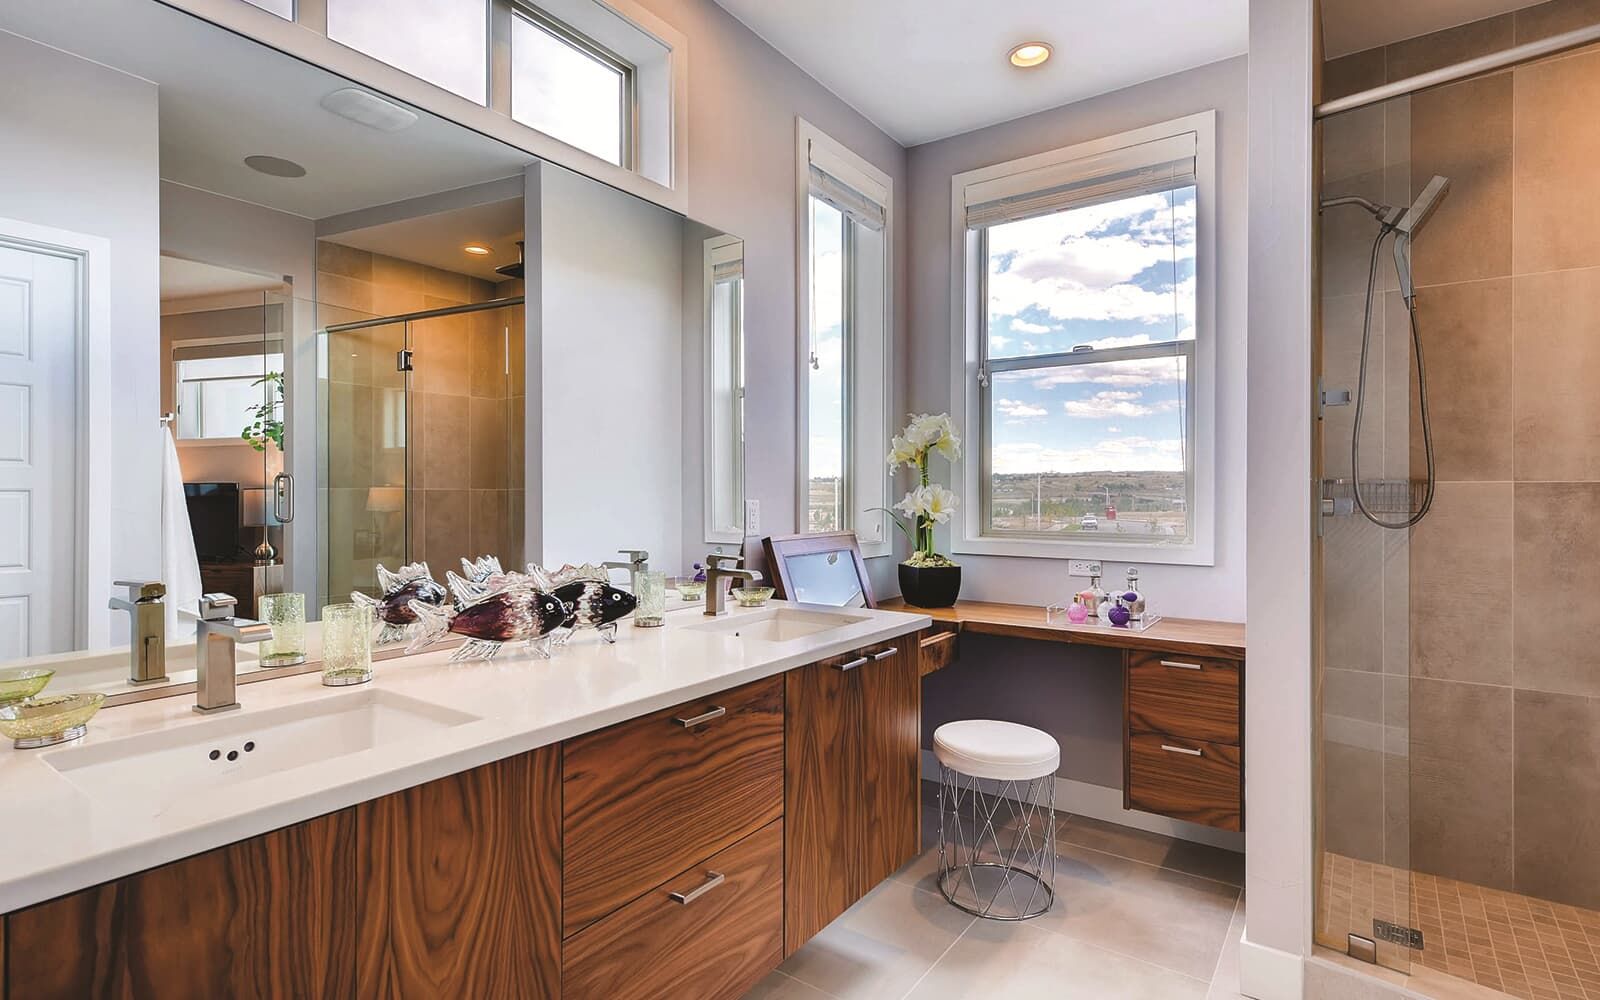 Signature-Four-Model-Interior-Master-Bathroom-Sterling-Ranch-Denver-Colorado